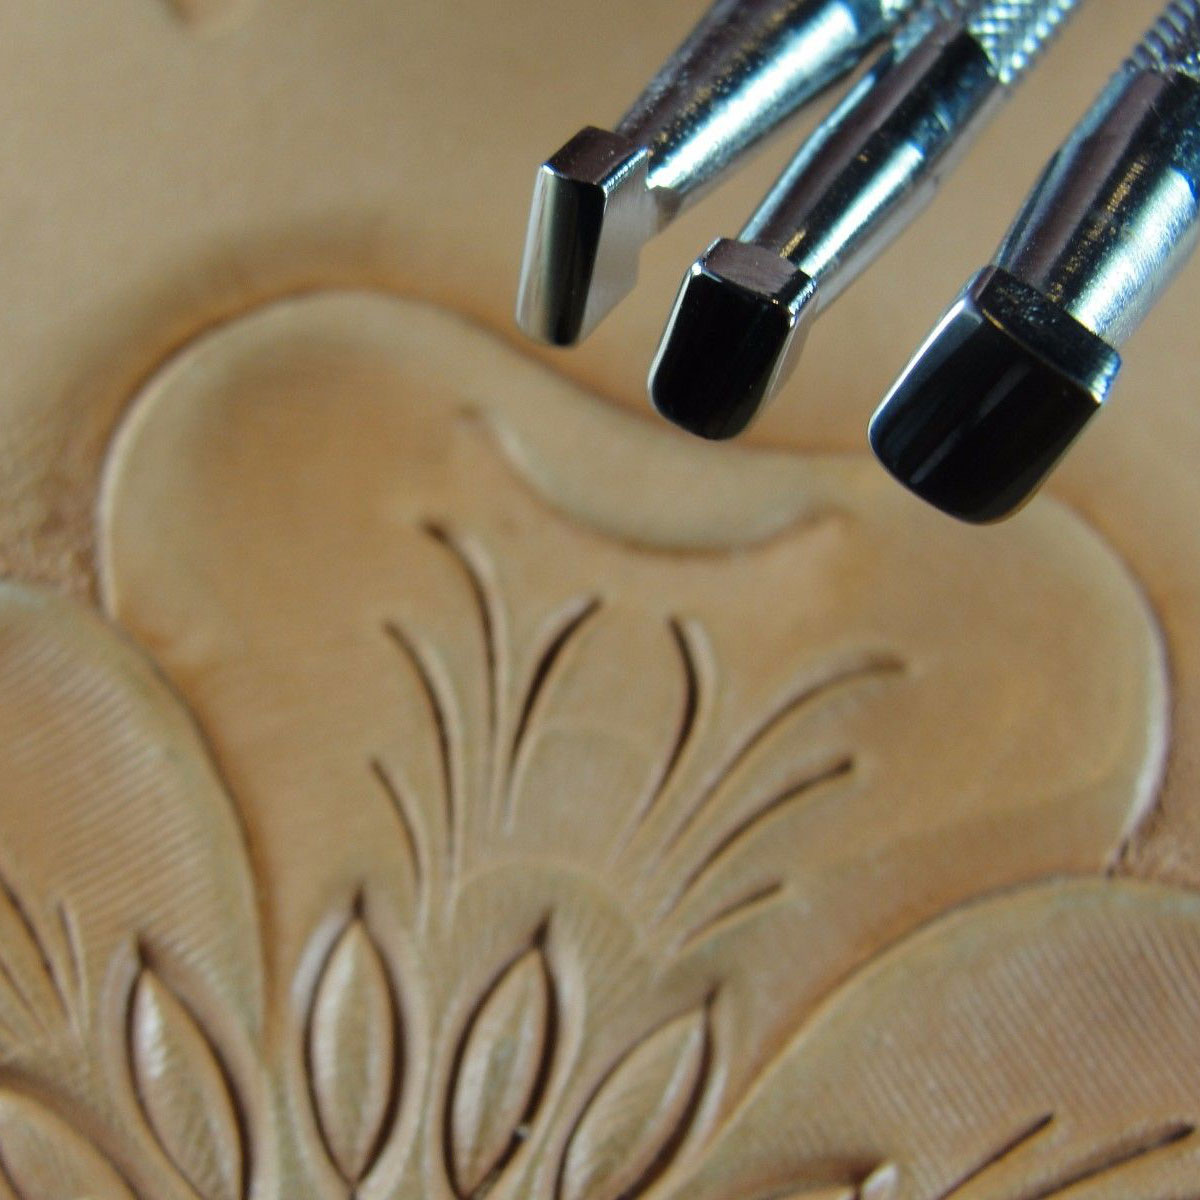 Pro Leather Carvers Leathercraft Tools Patterns Videos Downloads